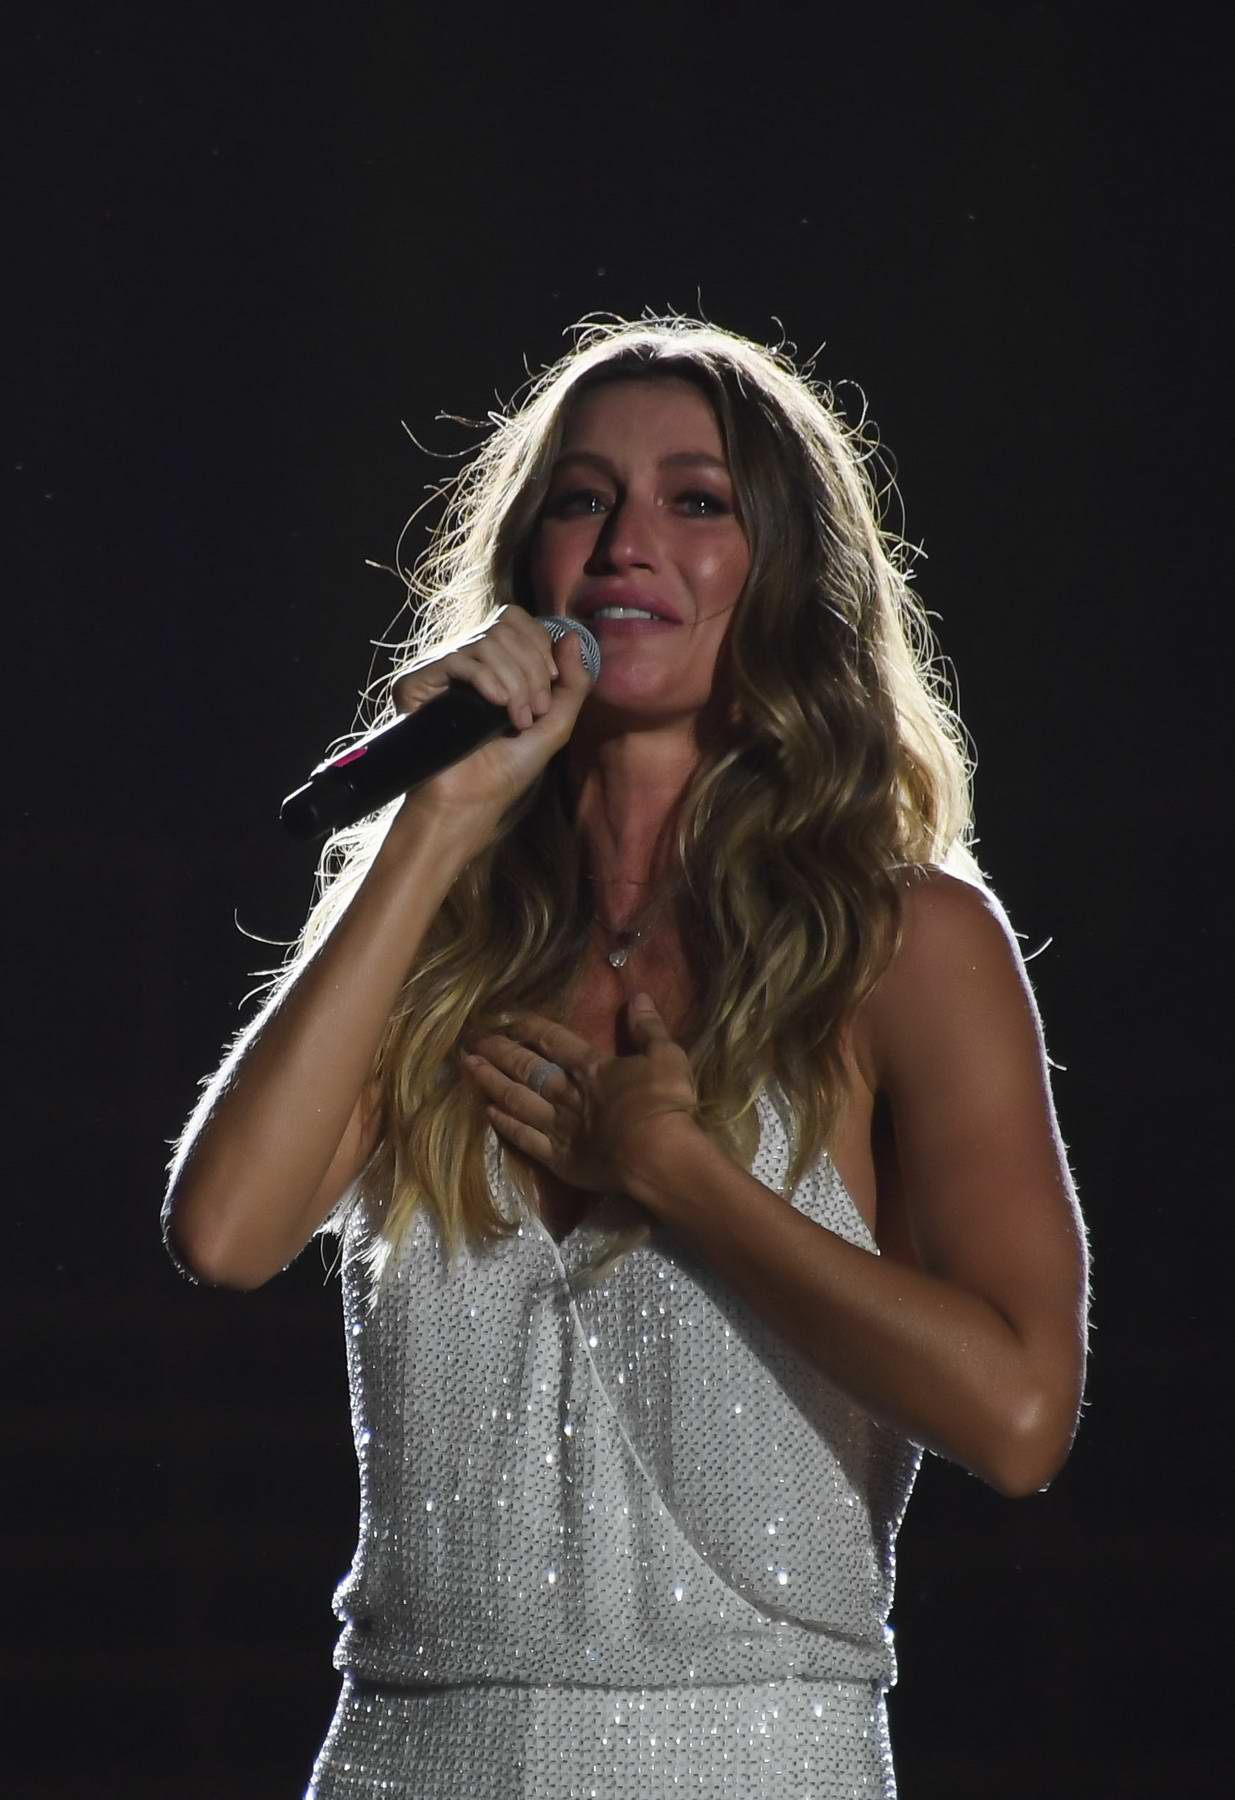 Gisele Bundchen at Rainforest Conservation at the World Stage on the first day of 'Rock in Rio' in Rio de Janeiro, Brazil